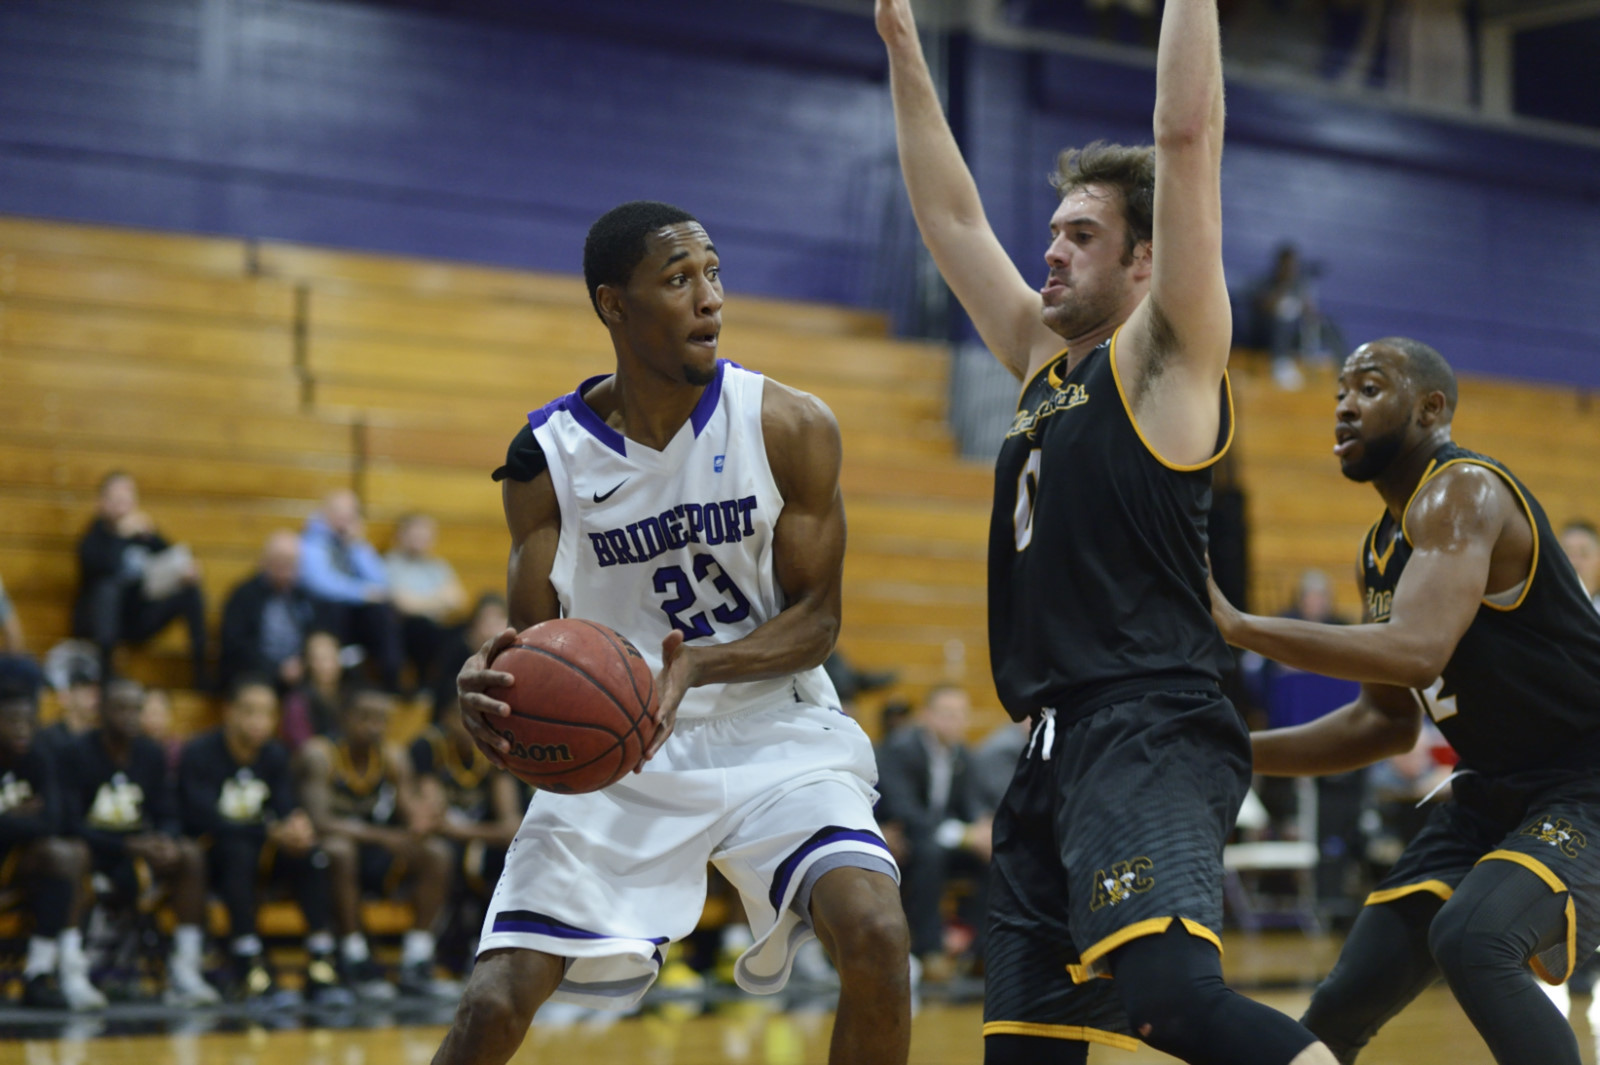 Purple Knights Now 4-2 Overall After 88-77 Men's Basketball Victory At Holy Family